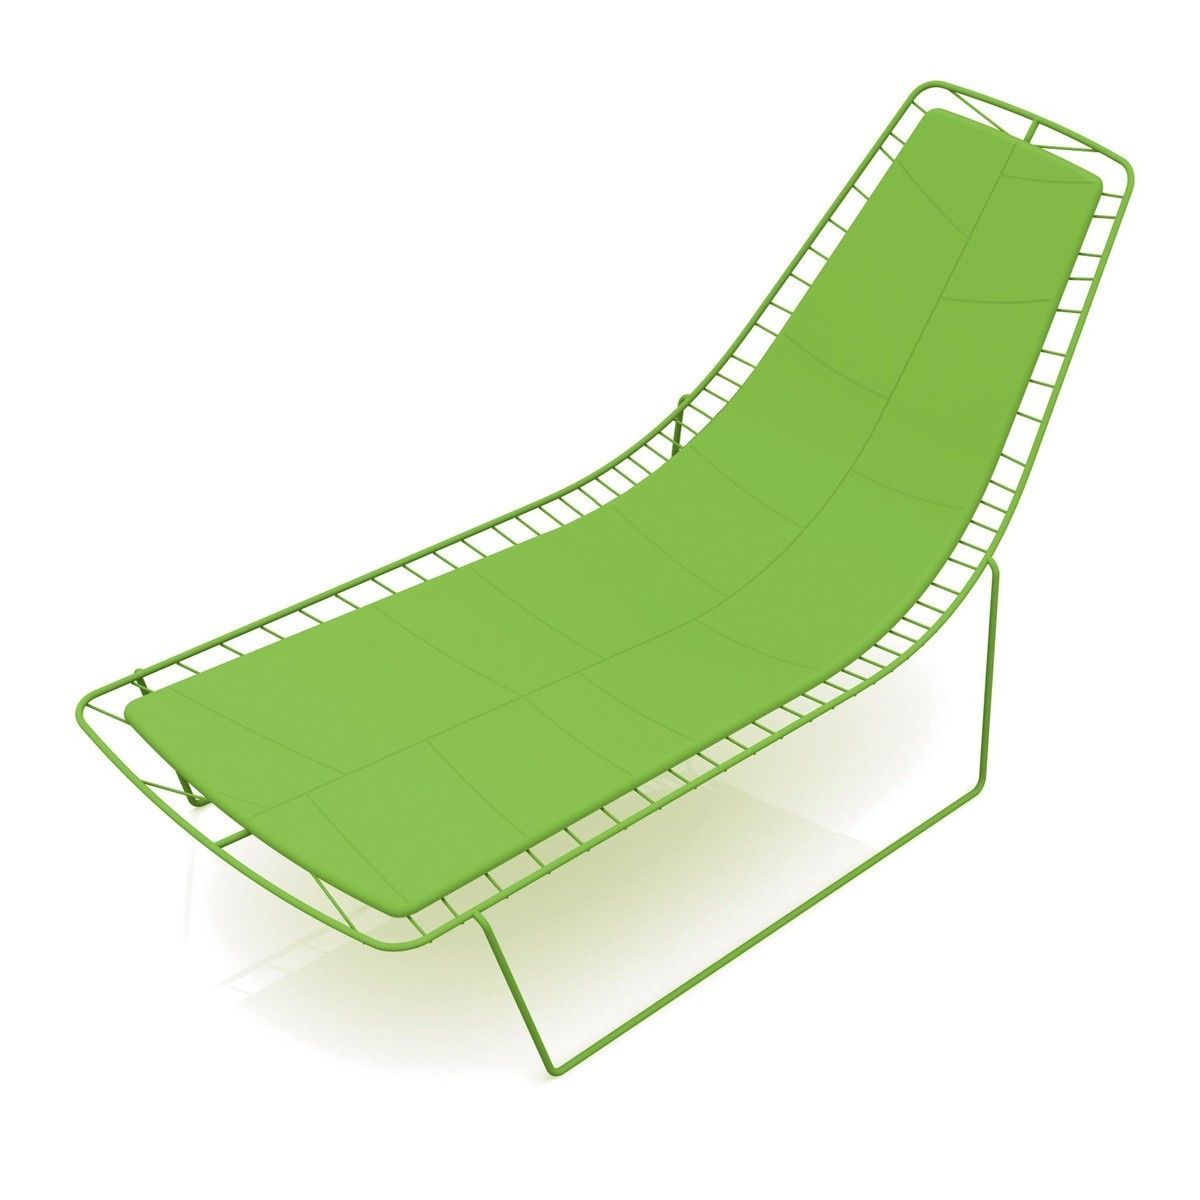 Leaf lounger arper for Arper leaf chaise lounge